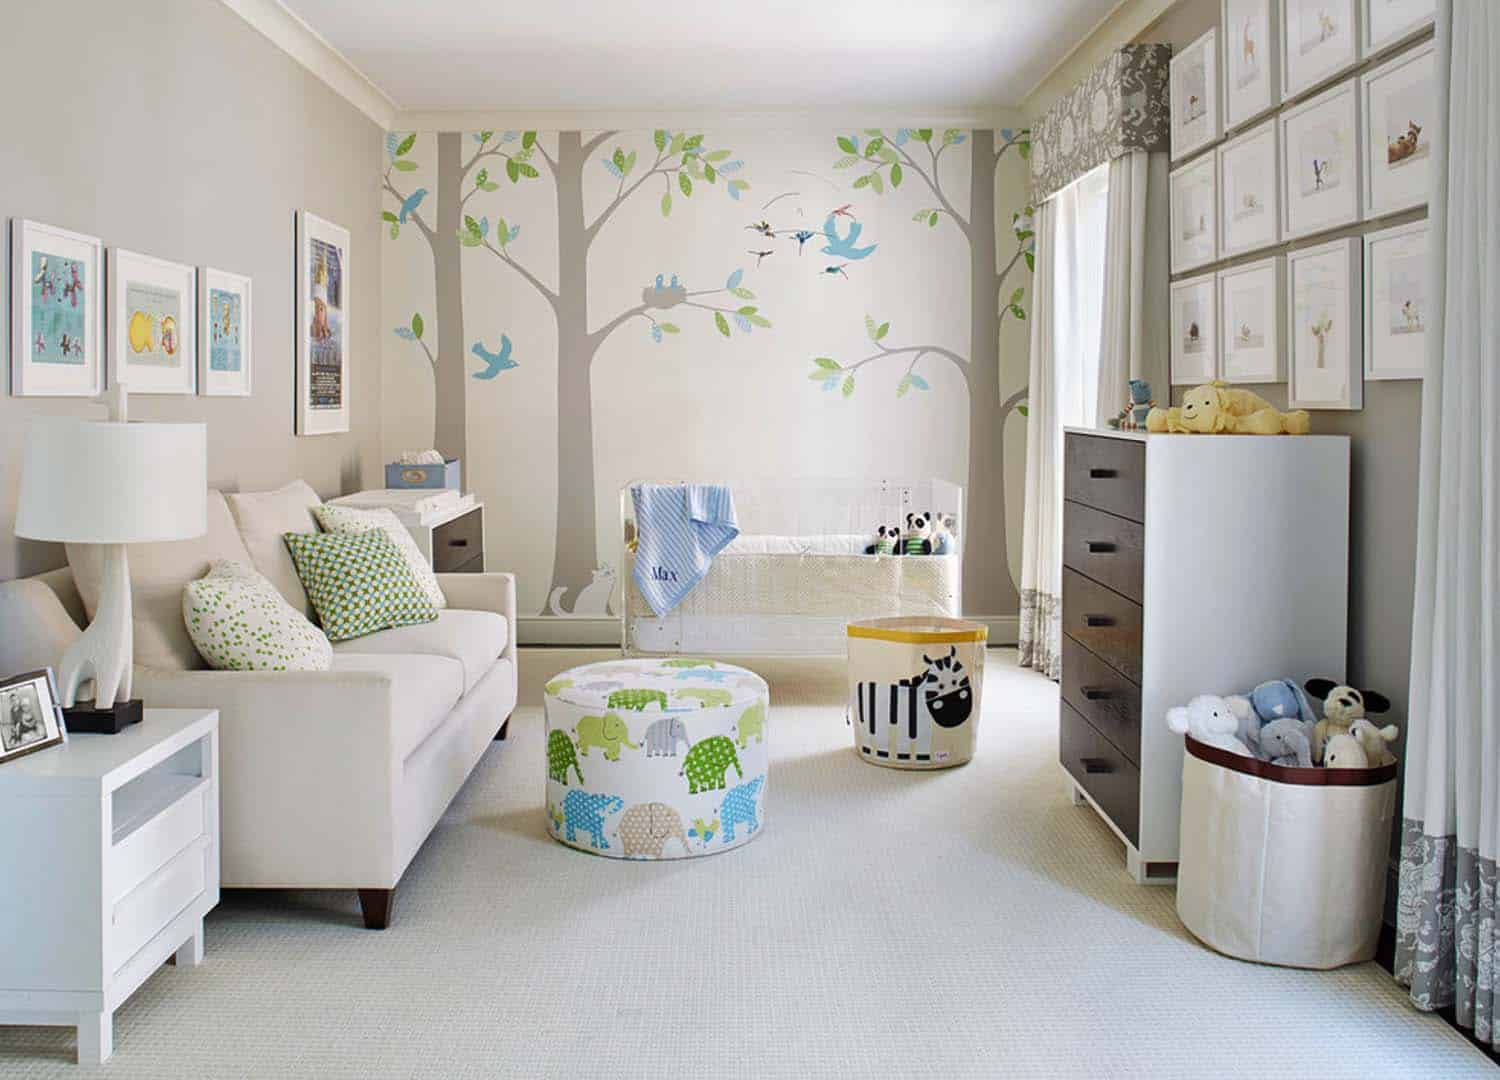 Stylish Nursery Decorating Ideas-04-1 Kindesign